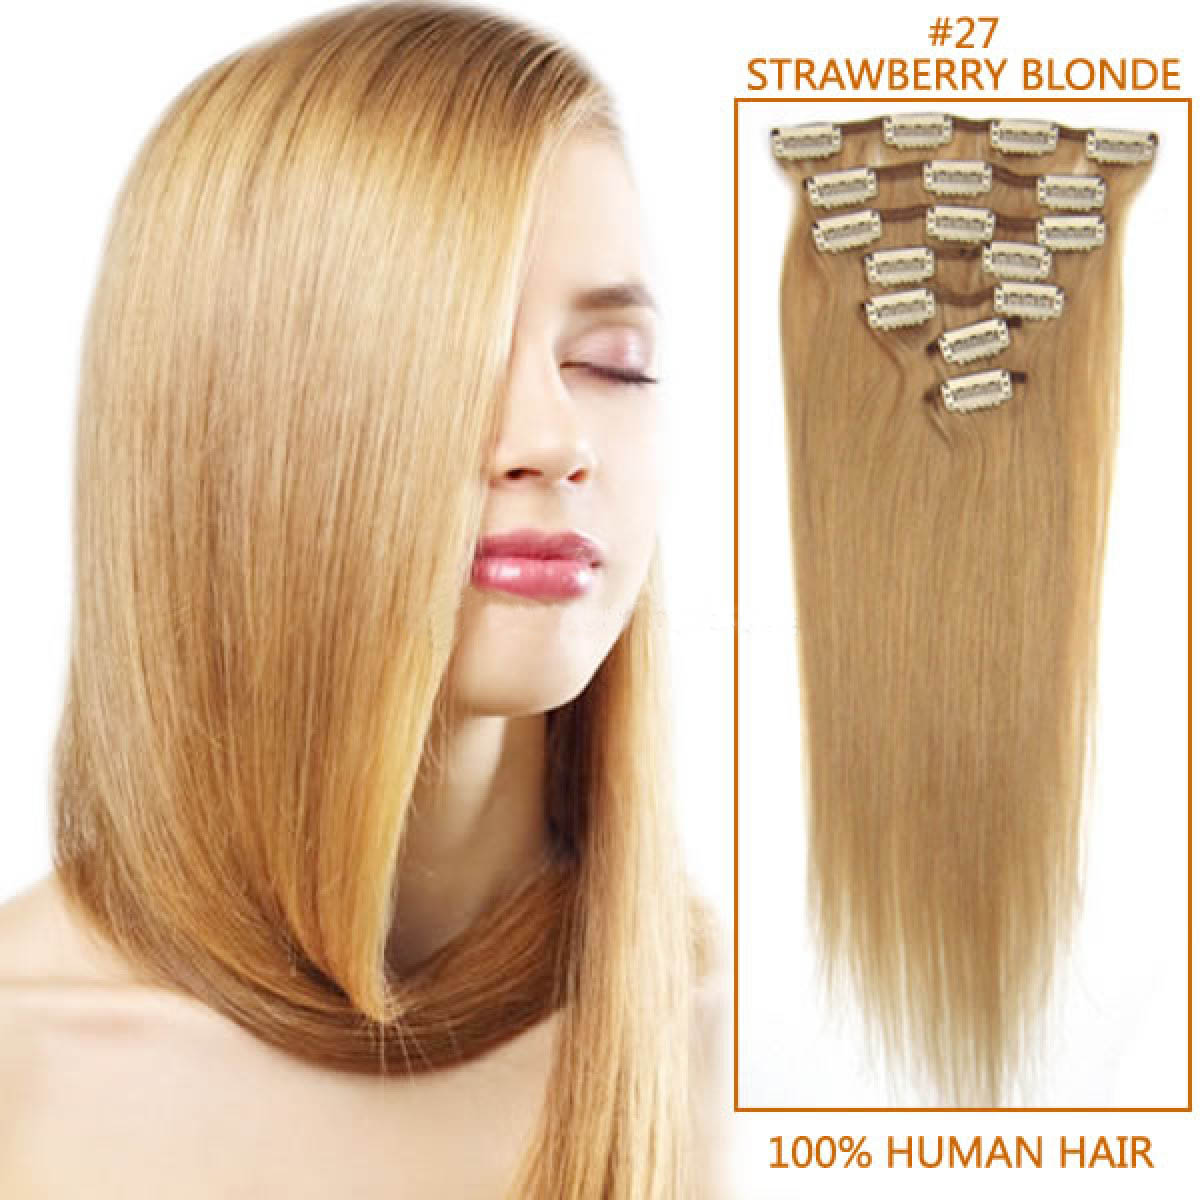 28 Inch 27 Strawberry Blonde Clip In Human Hair Extensions 11pcs